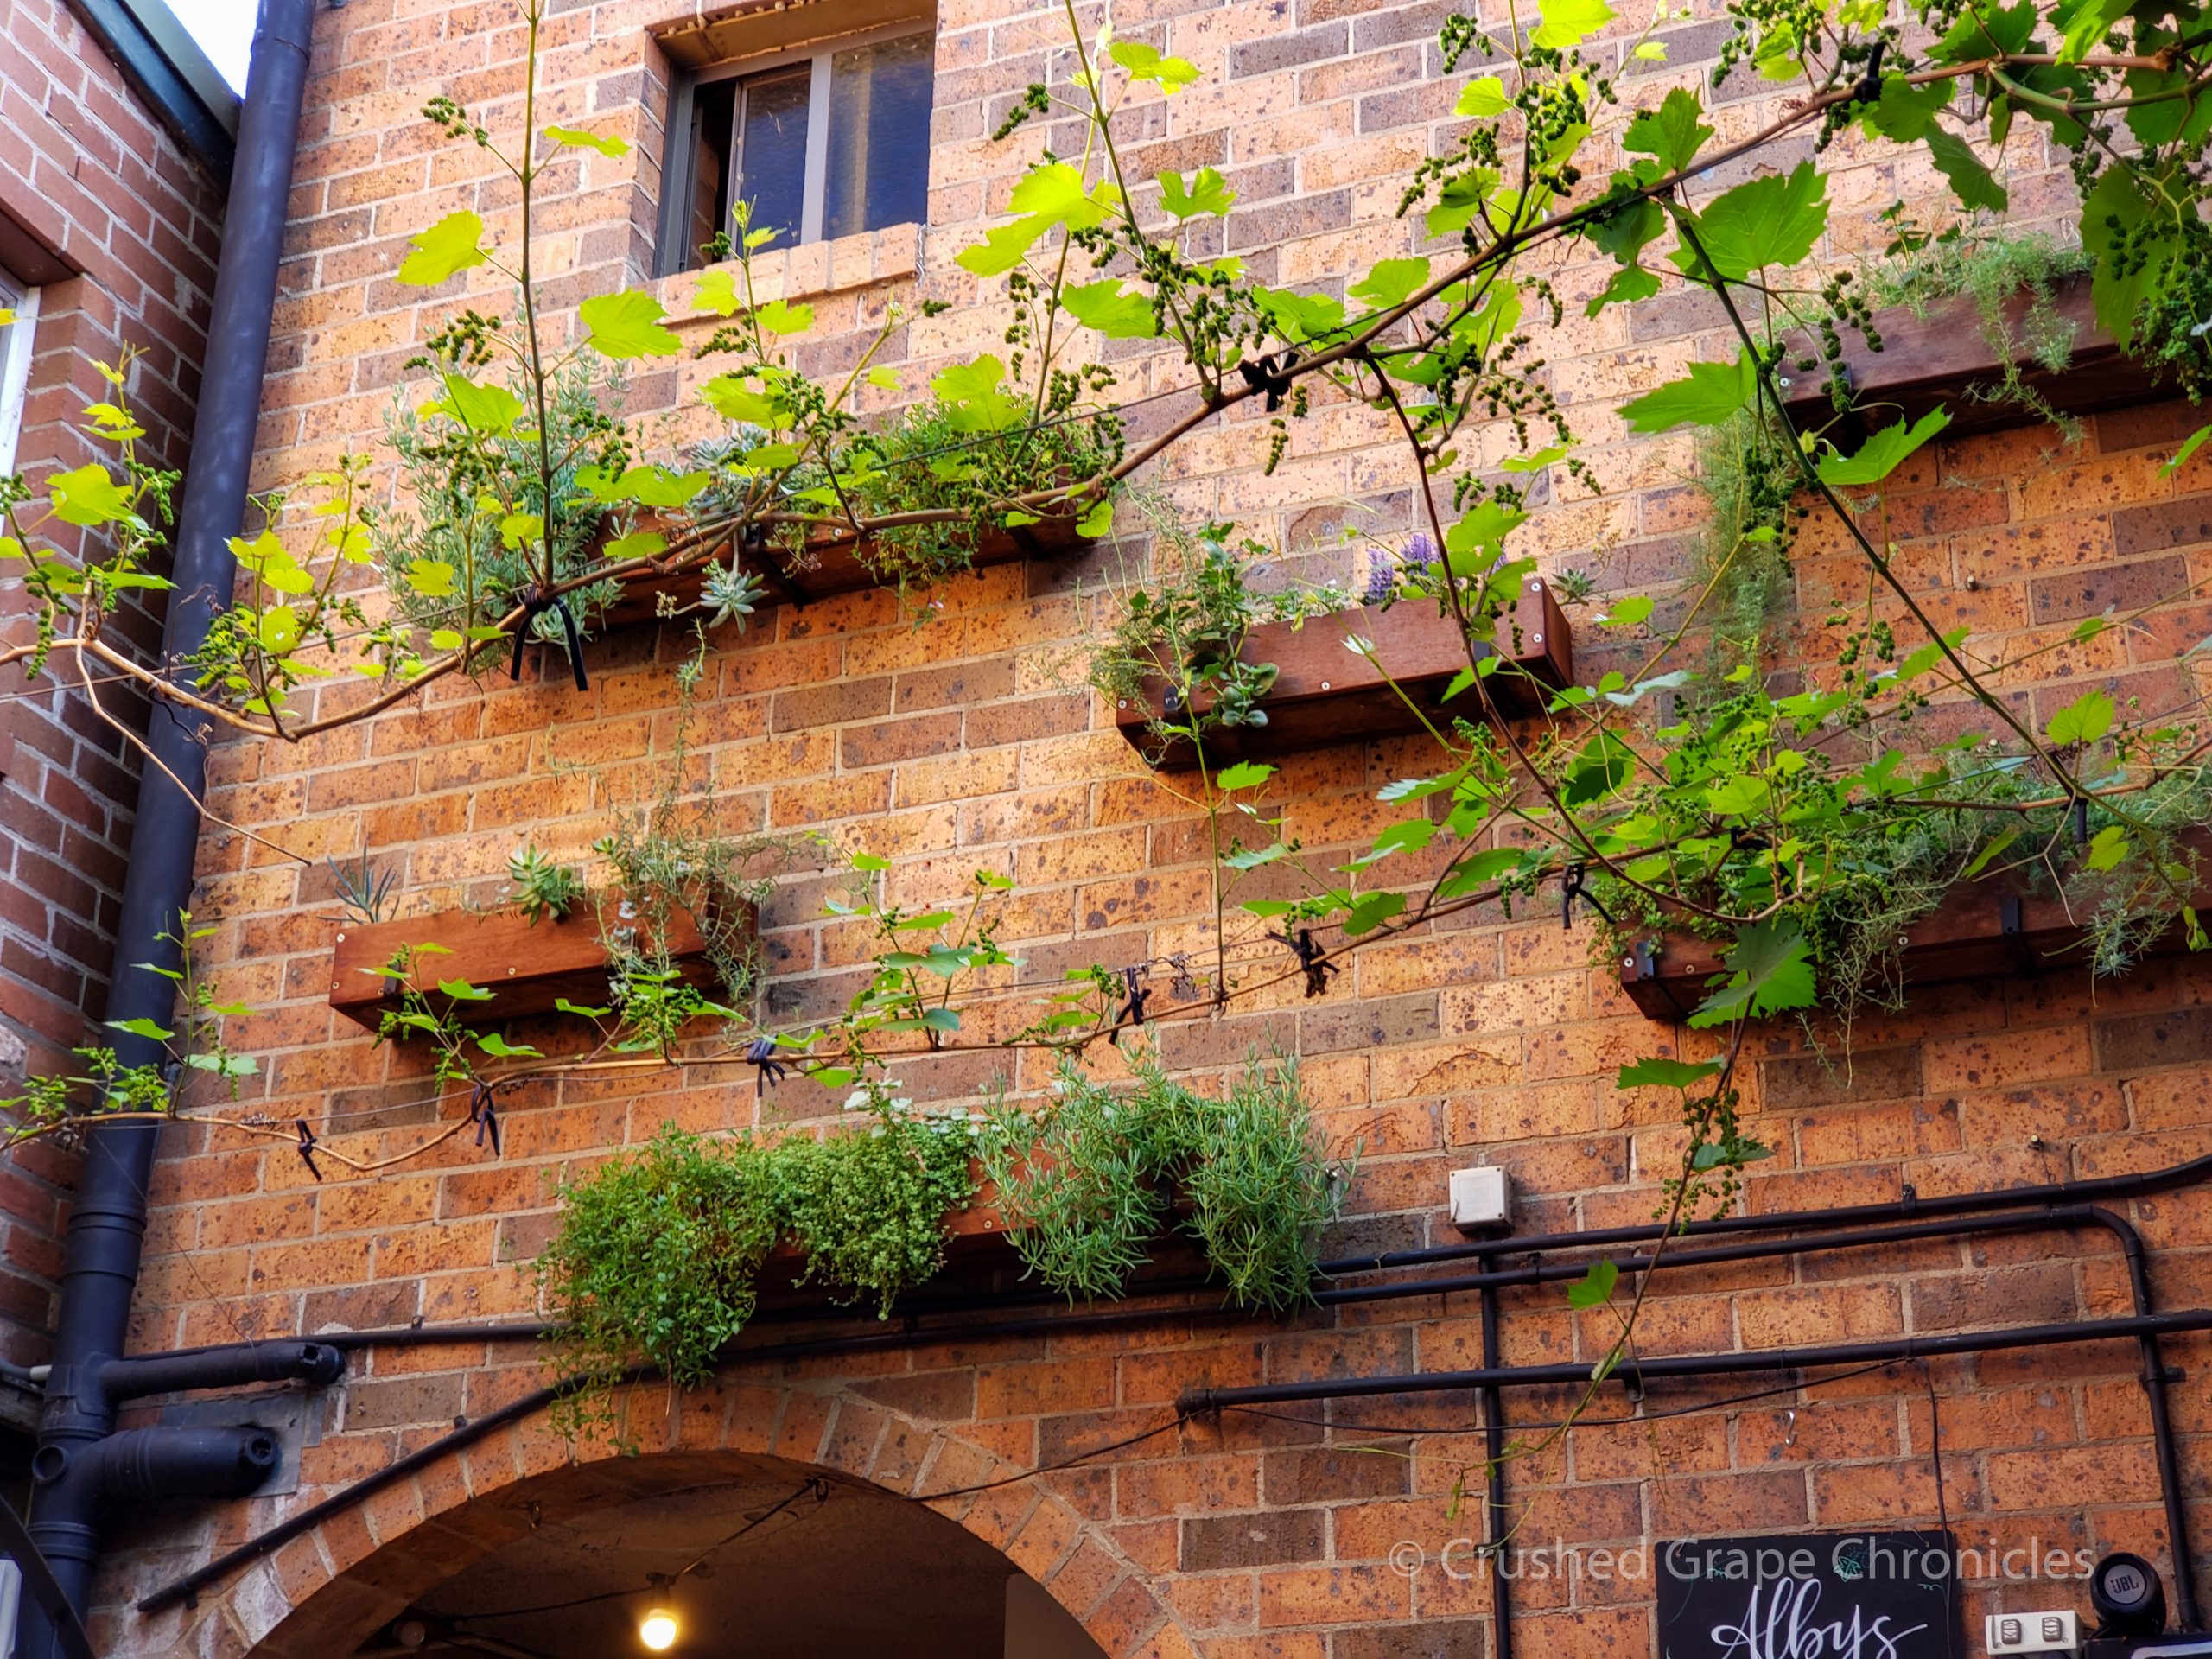 Open to the sky with trees vines and window boxes the enviroment at Alby + Esther's is soothing.